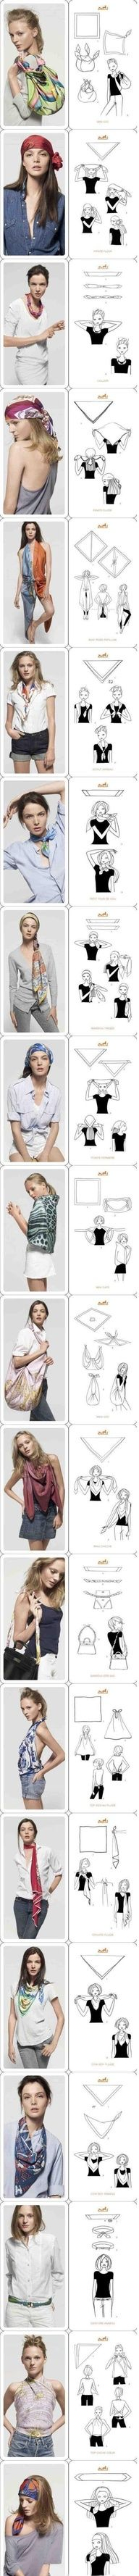 Scarf - How to wear